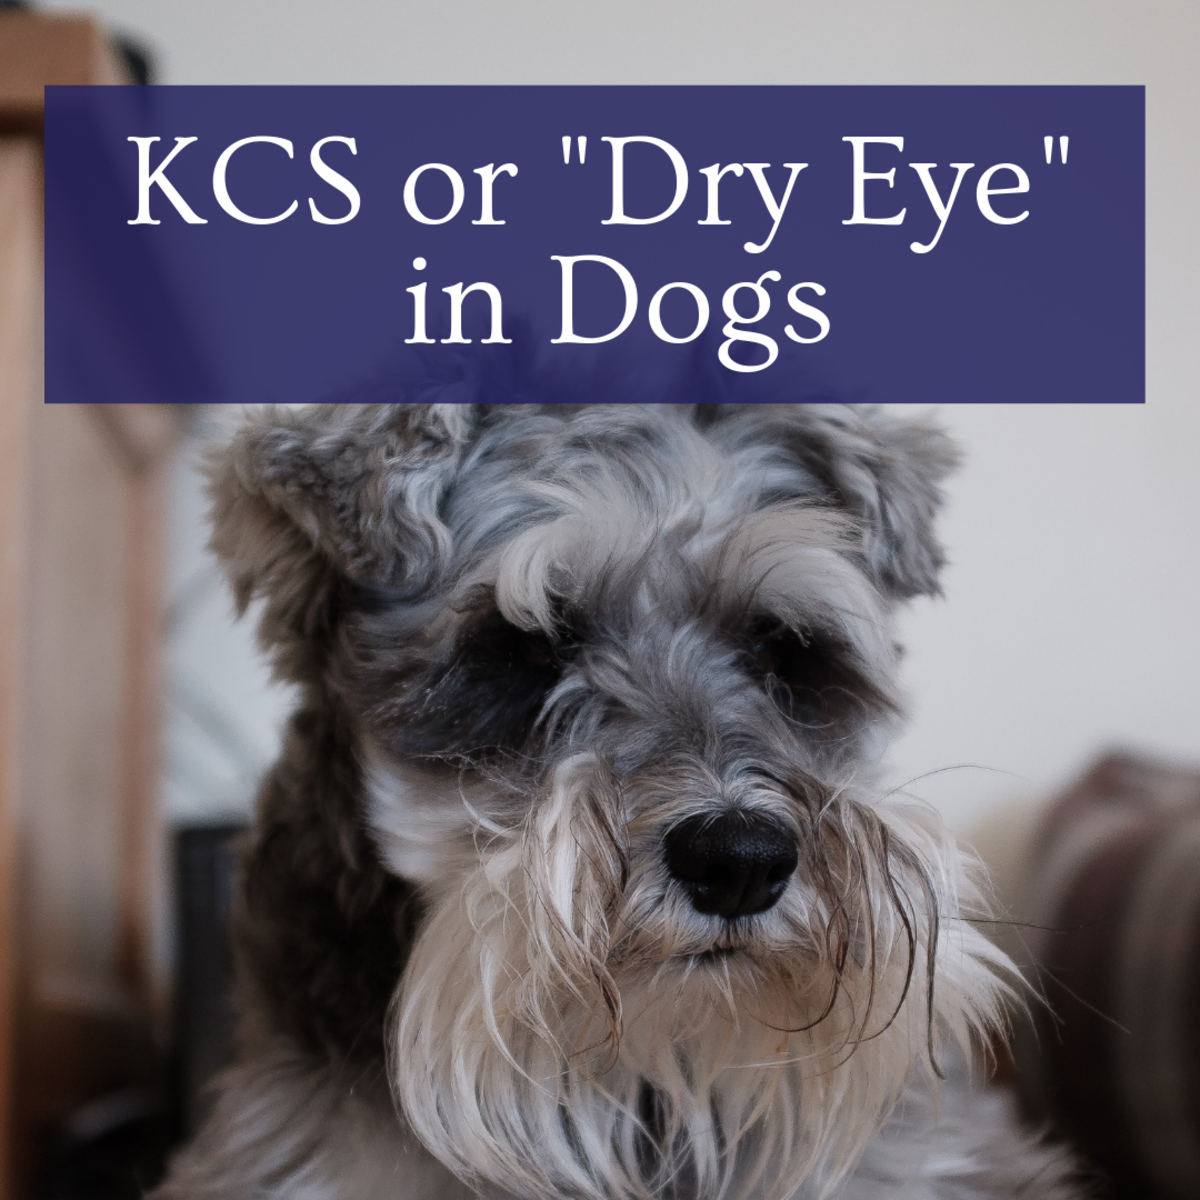 Our Story: The Causes of KCS or